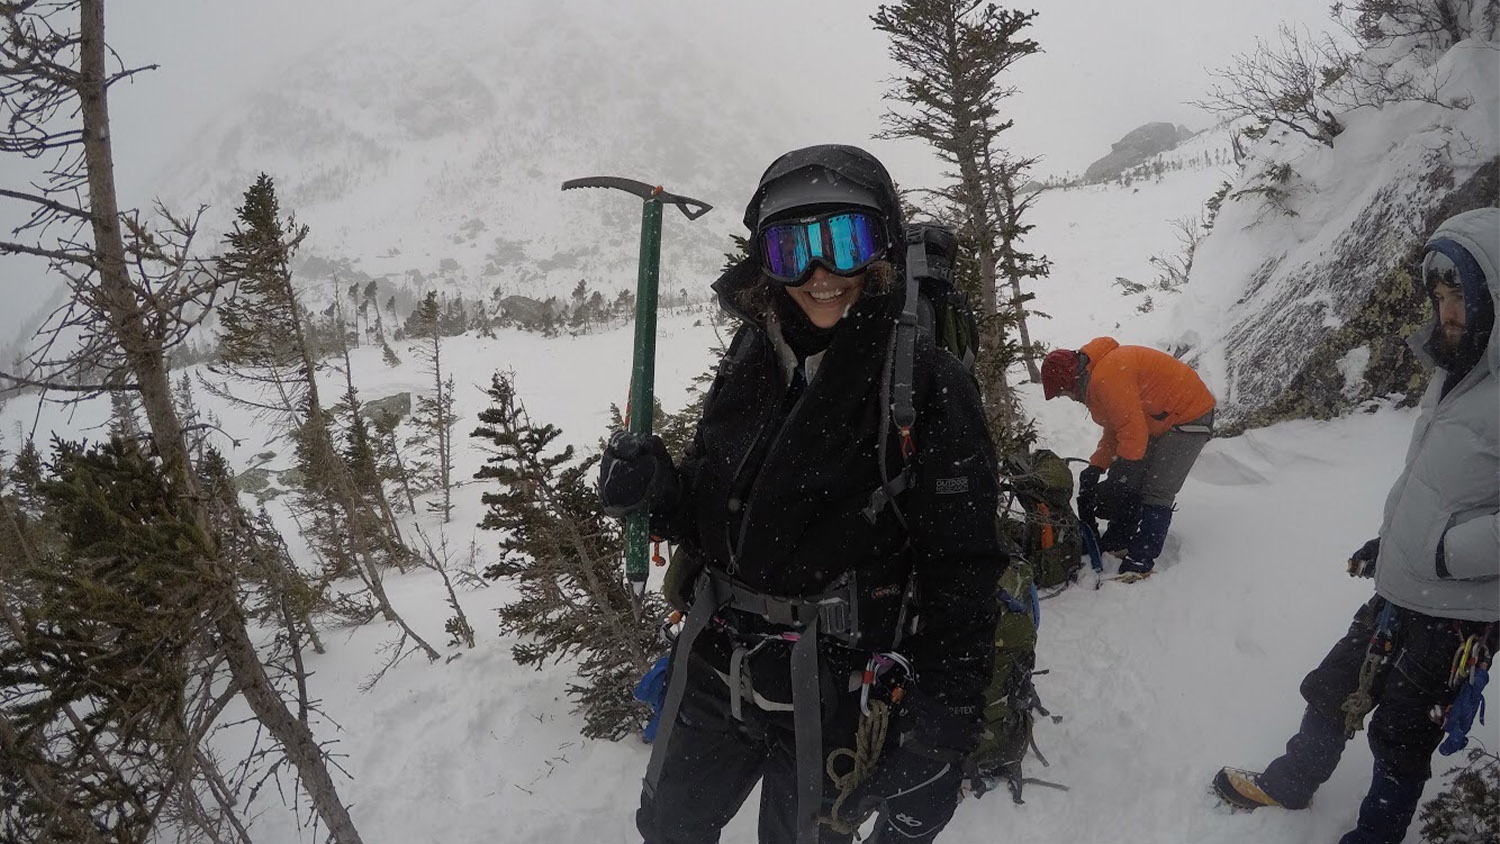 Alyssa Stroker holds a pick axe during a mountain climb in the snow